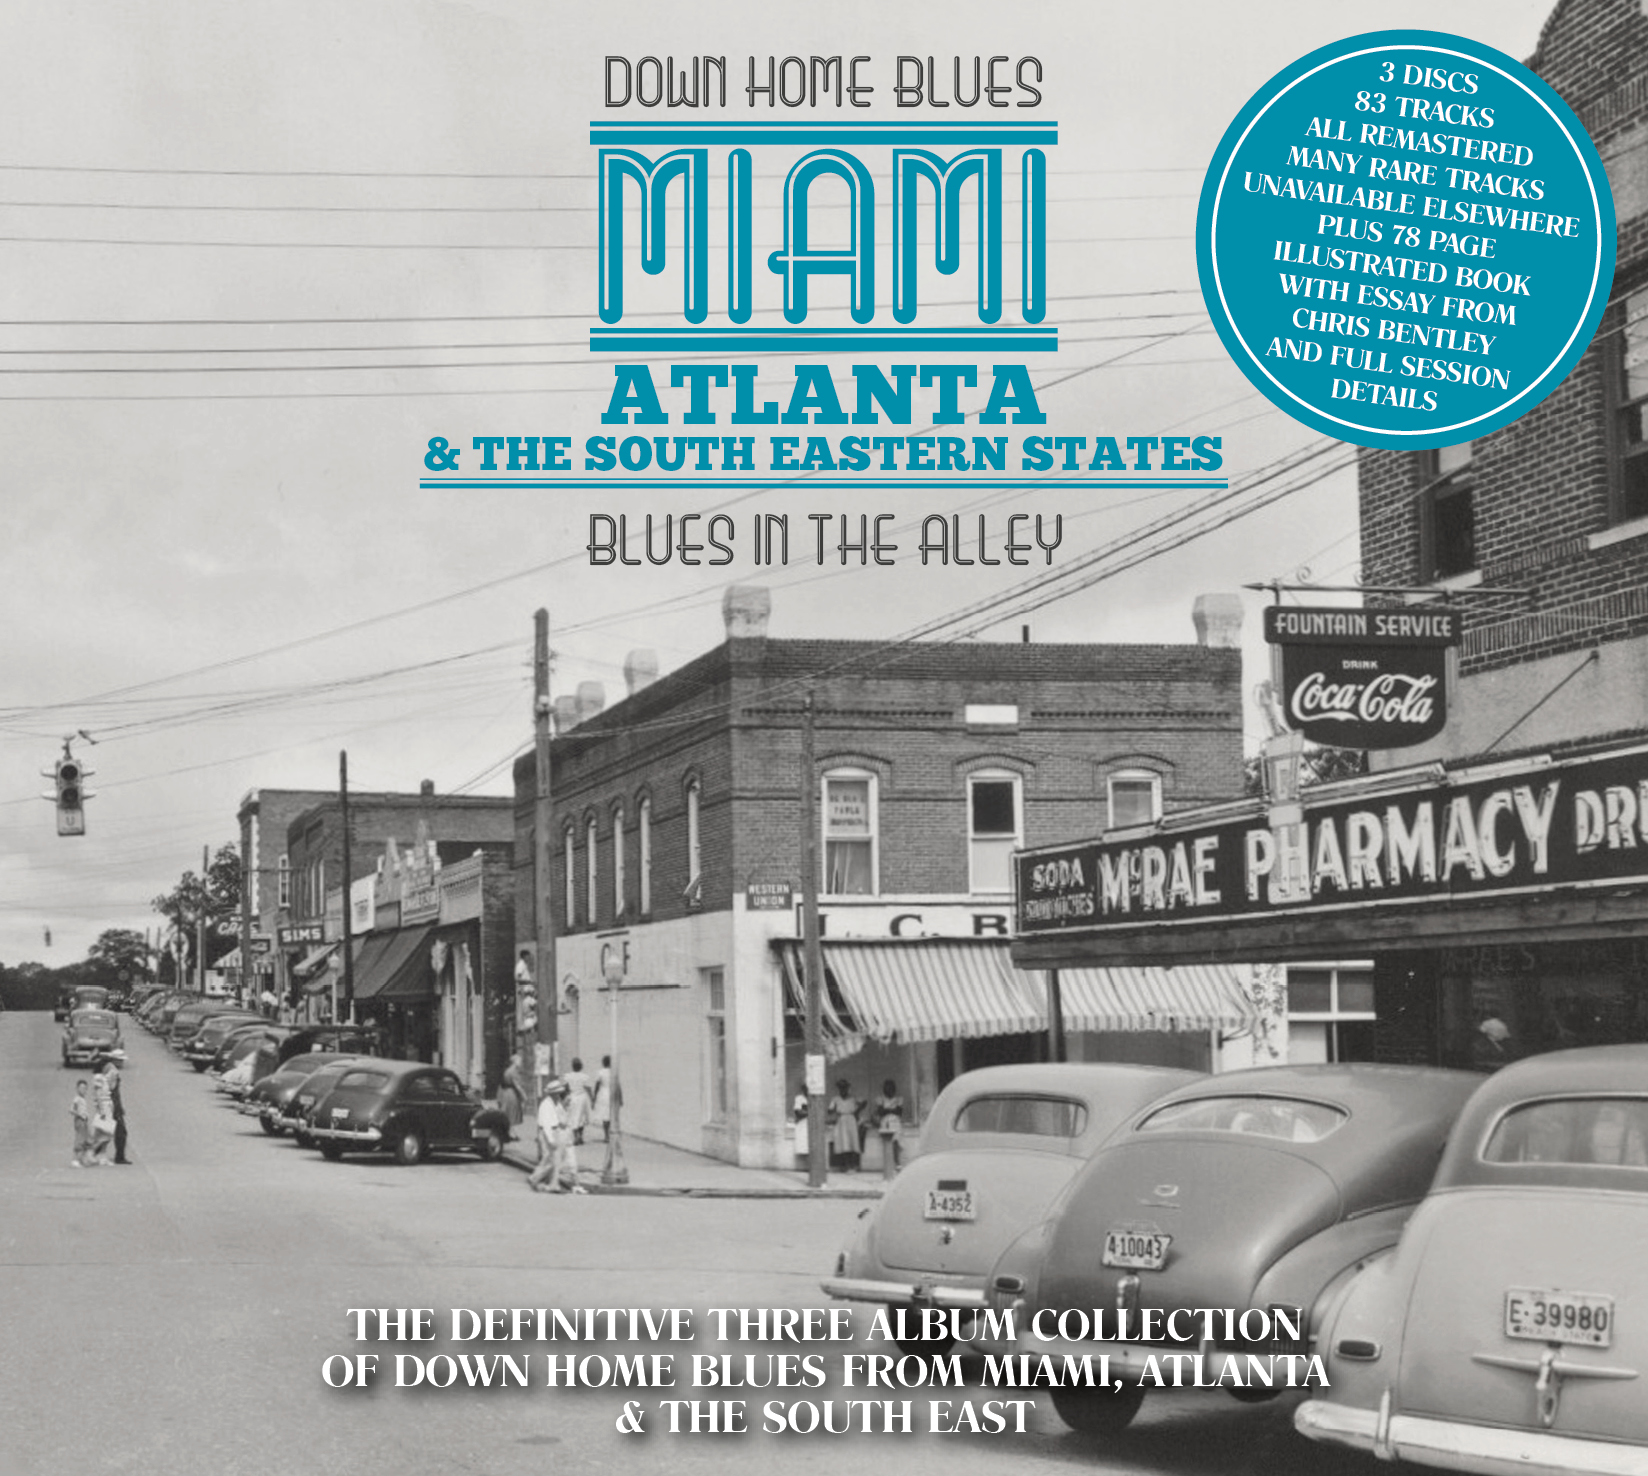 Down Home Blues: Miami, Atlanta & The South Eastern States – Blues In The Alley